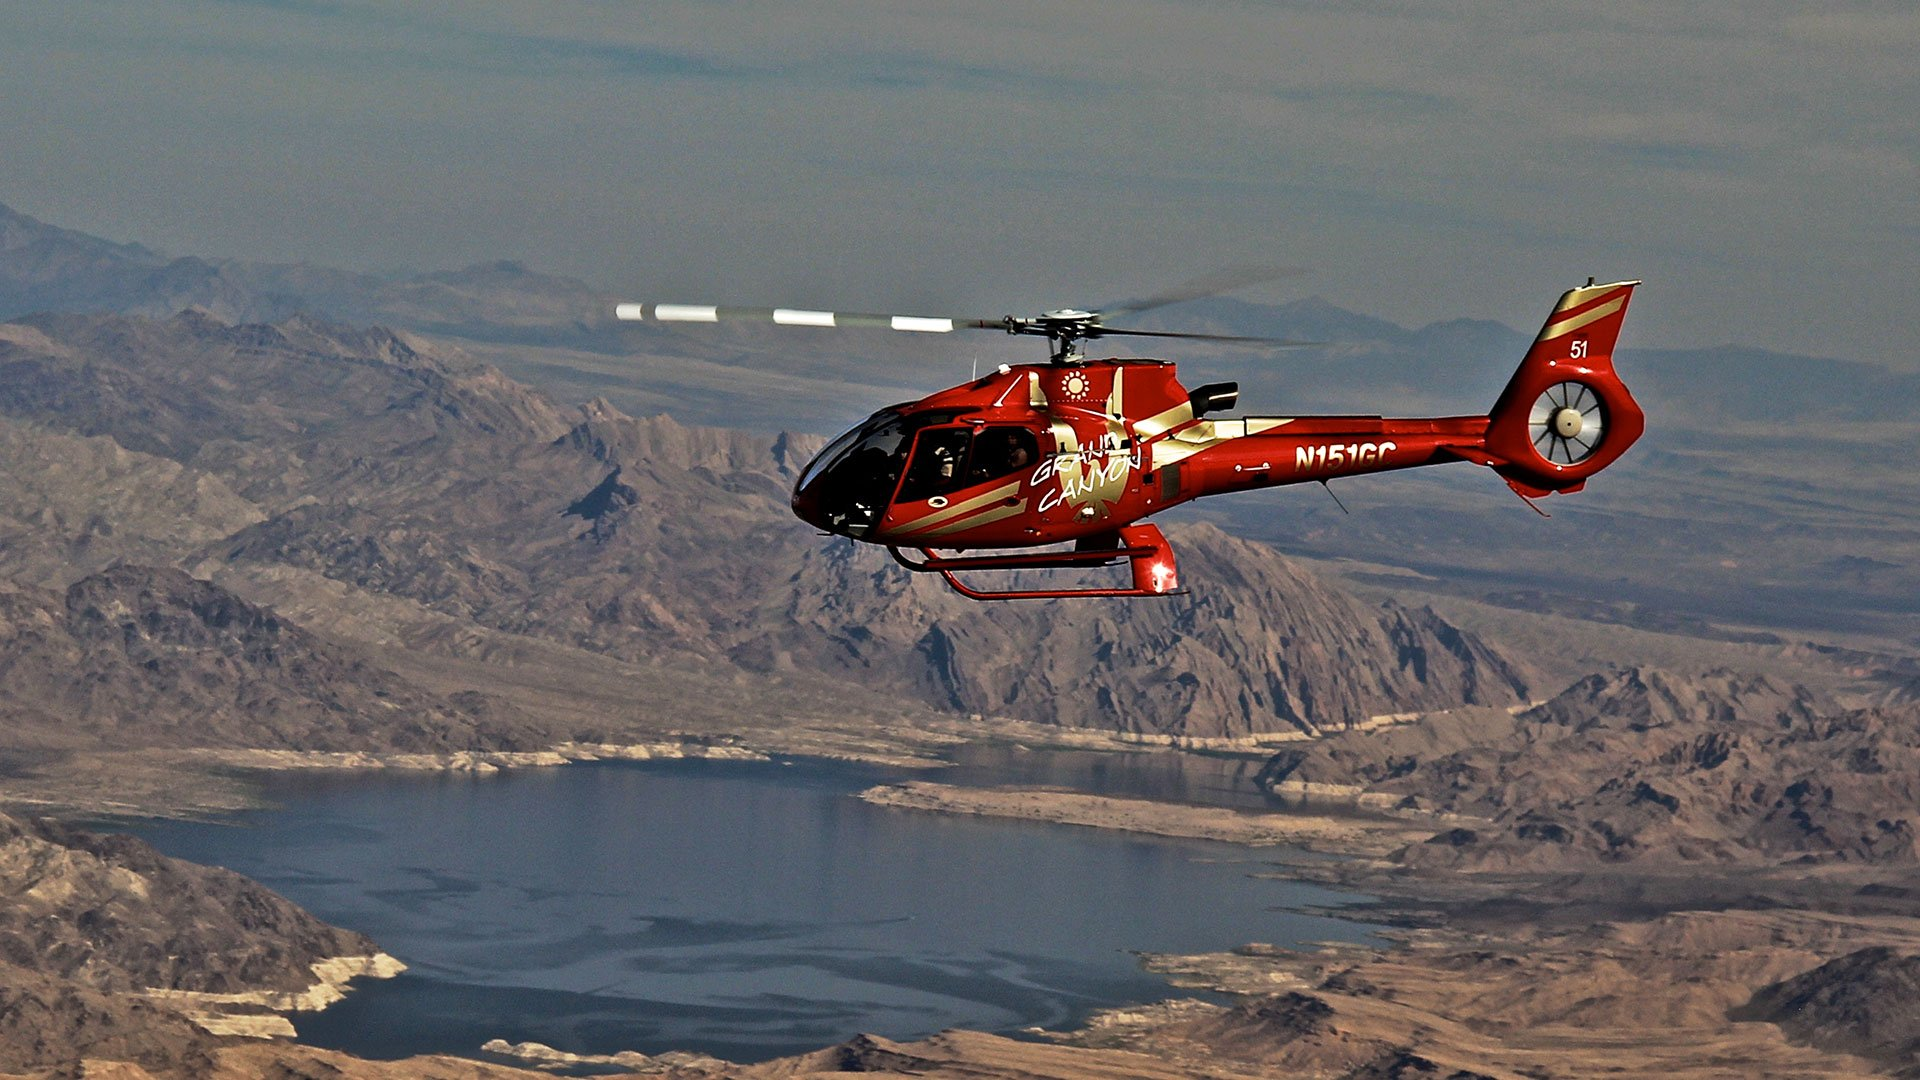 Hélicoptère EC-130 survolant le Lake Mead en direction de la rive ouest du Grand Canyon